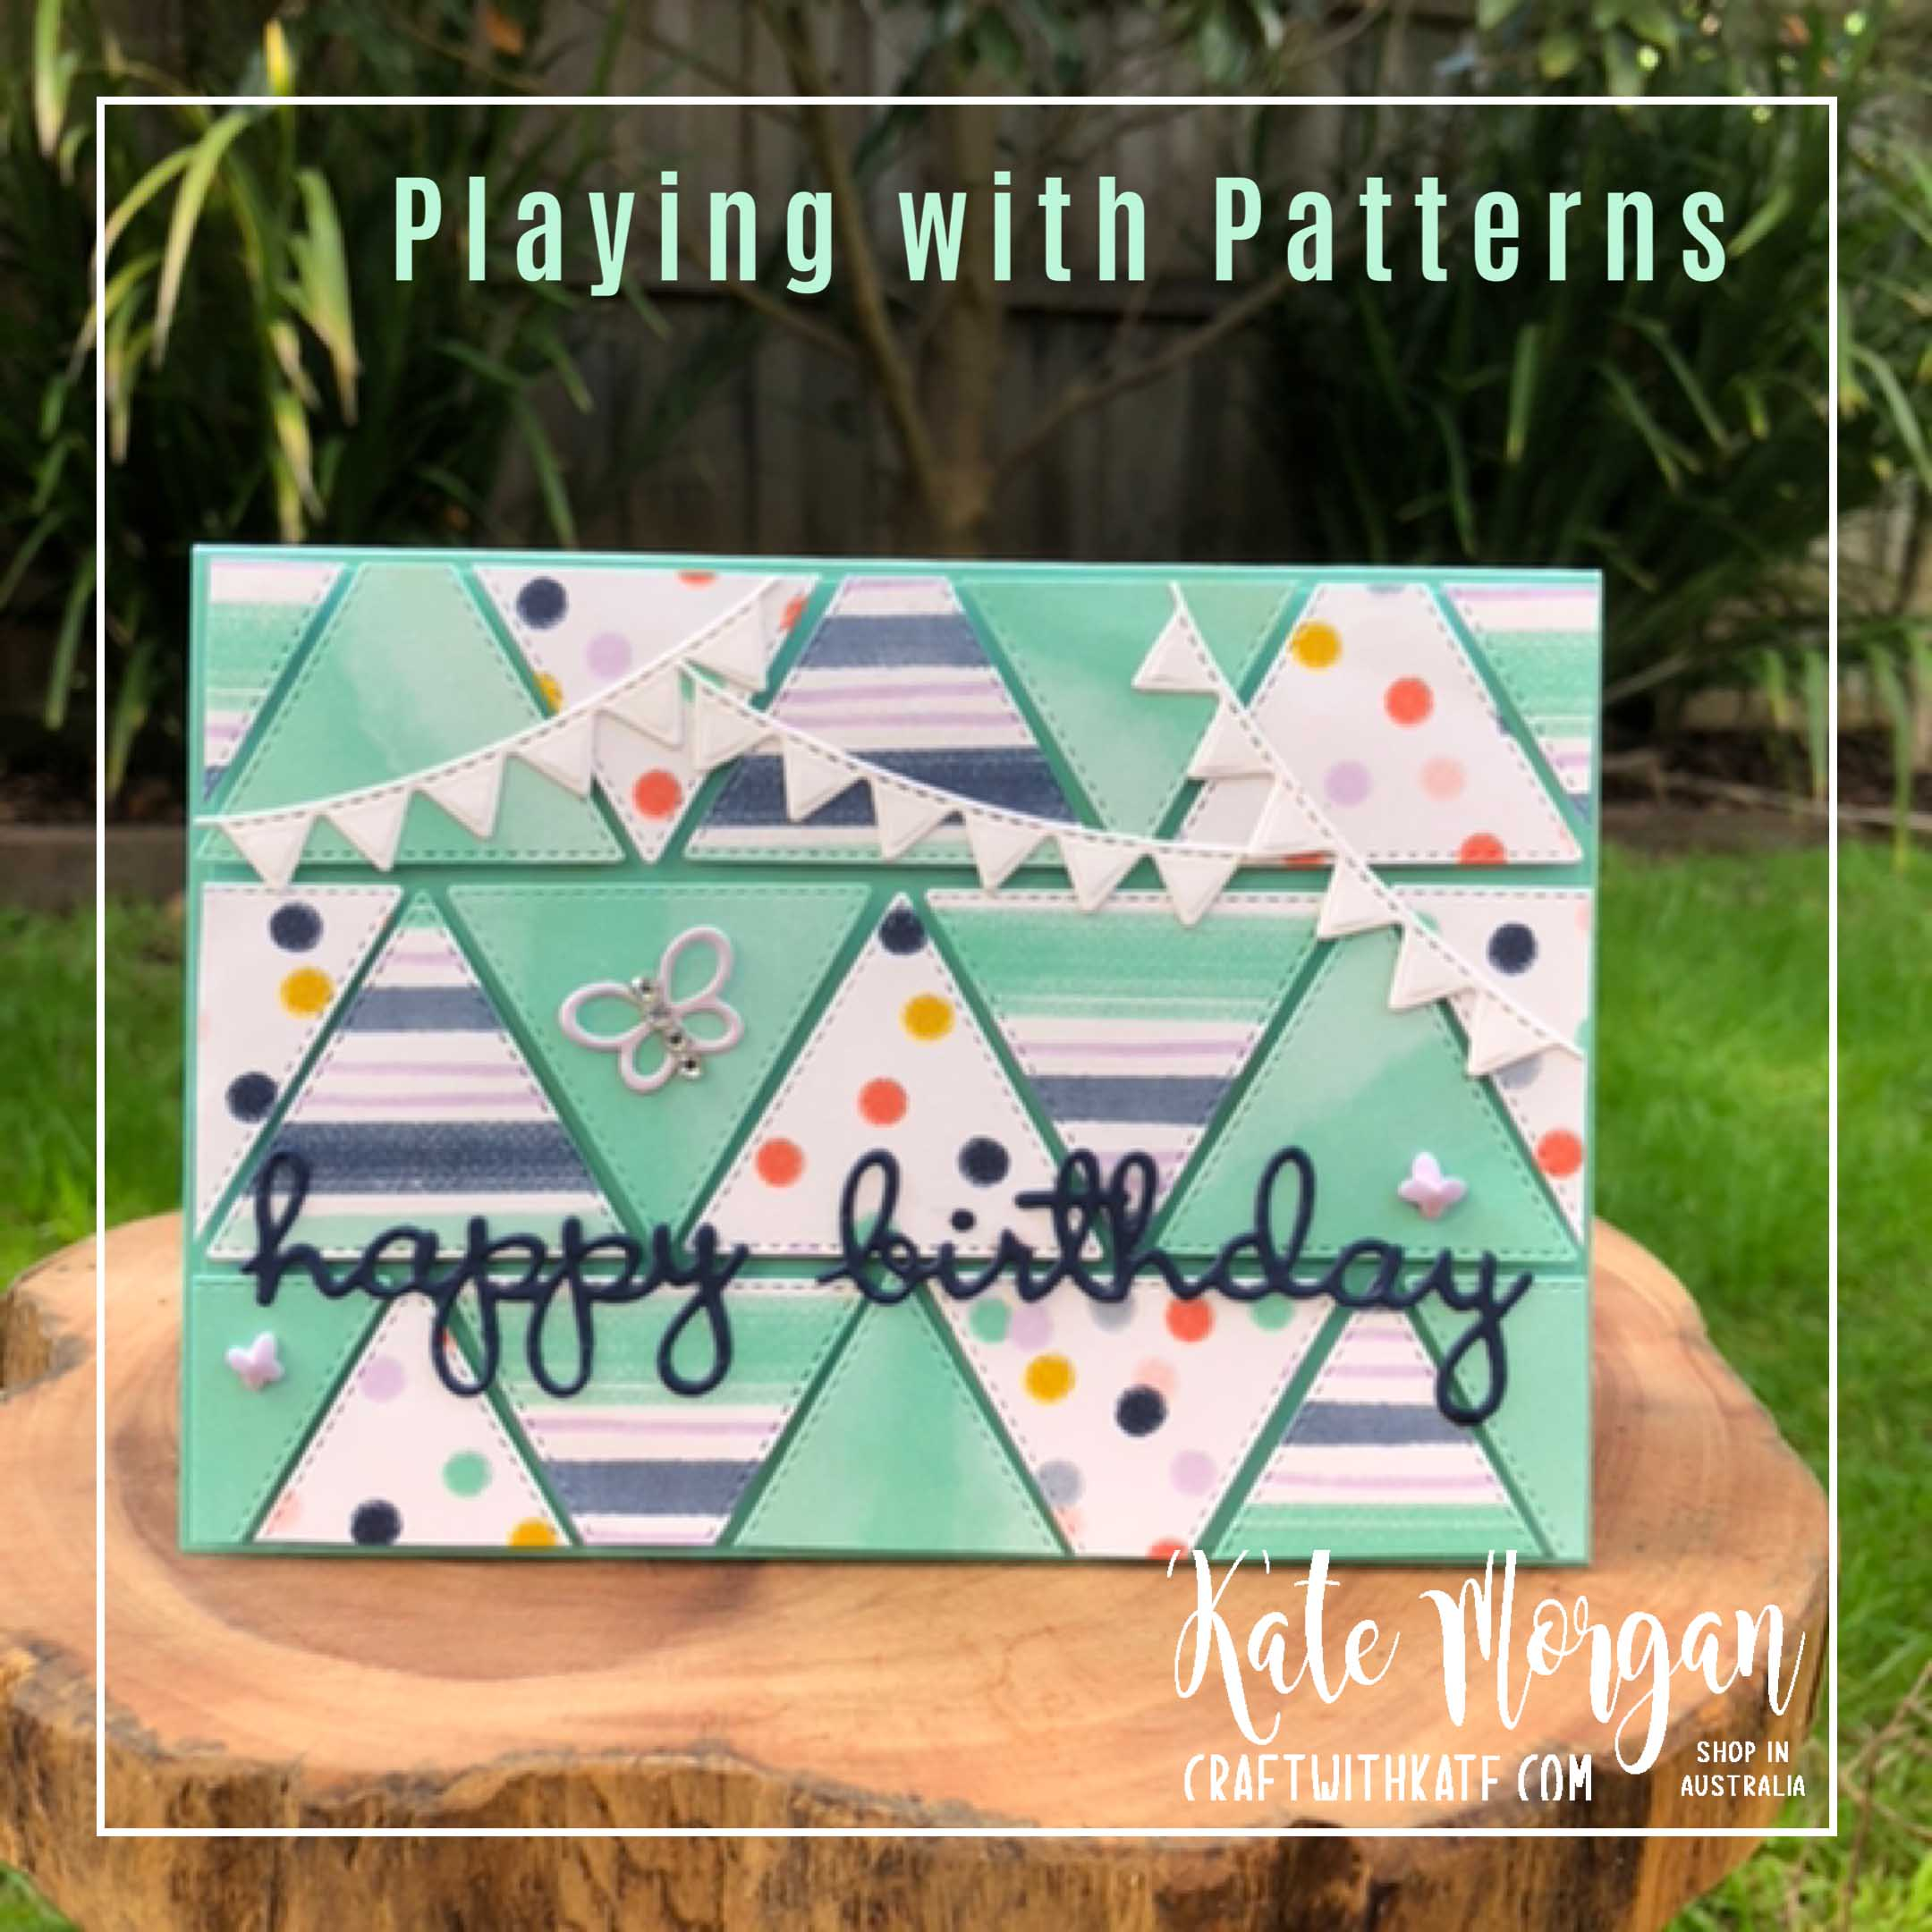 Playing with Patterns & Stitched Triangles for CCS Coastal Cabana by Kate Morgan Stampin Up Australia 2020